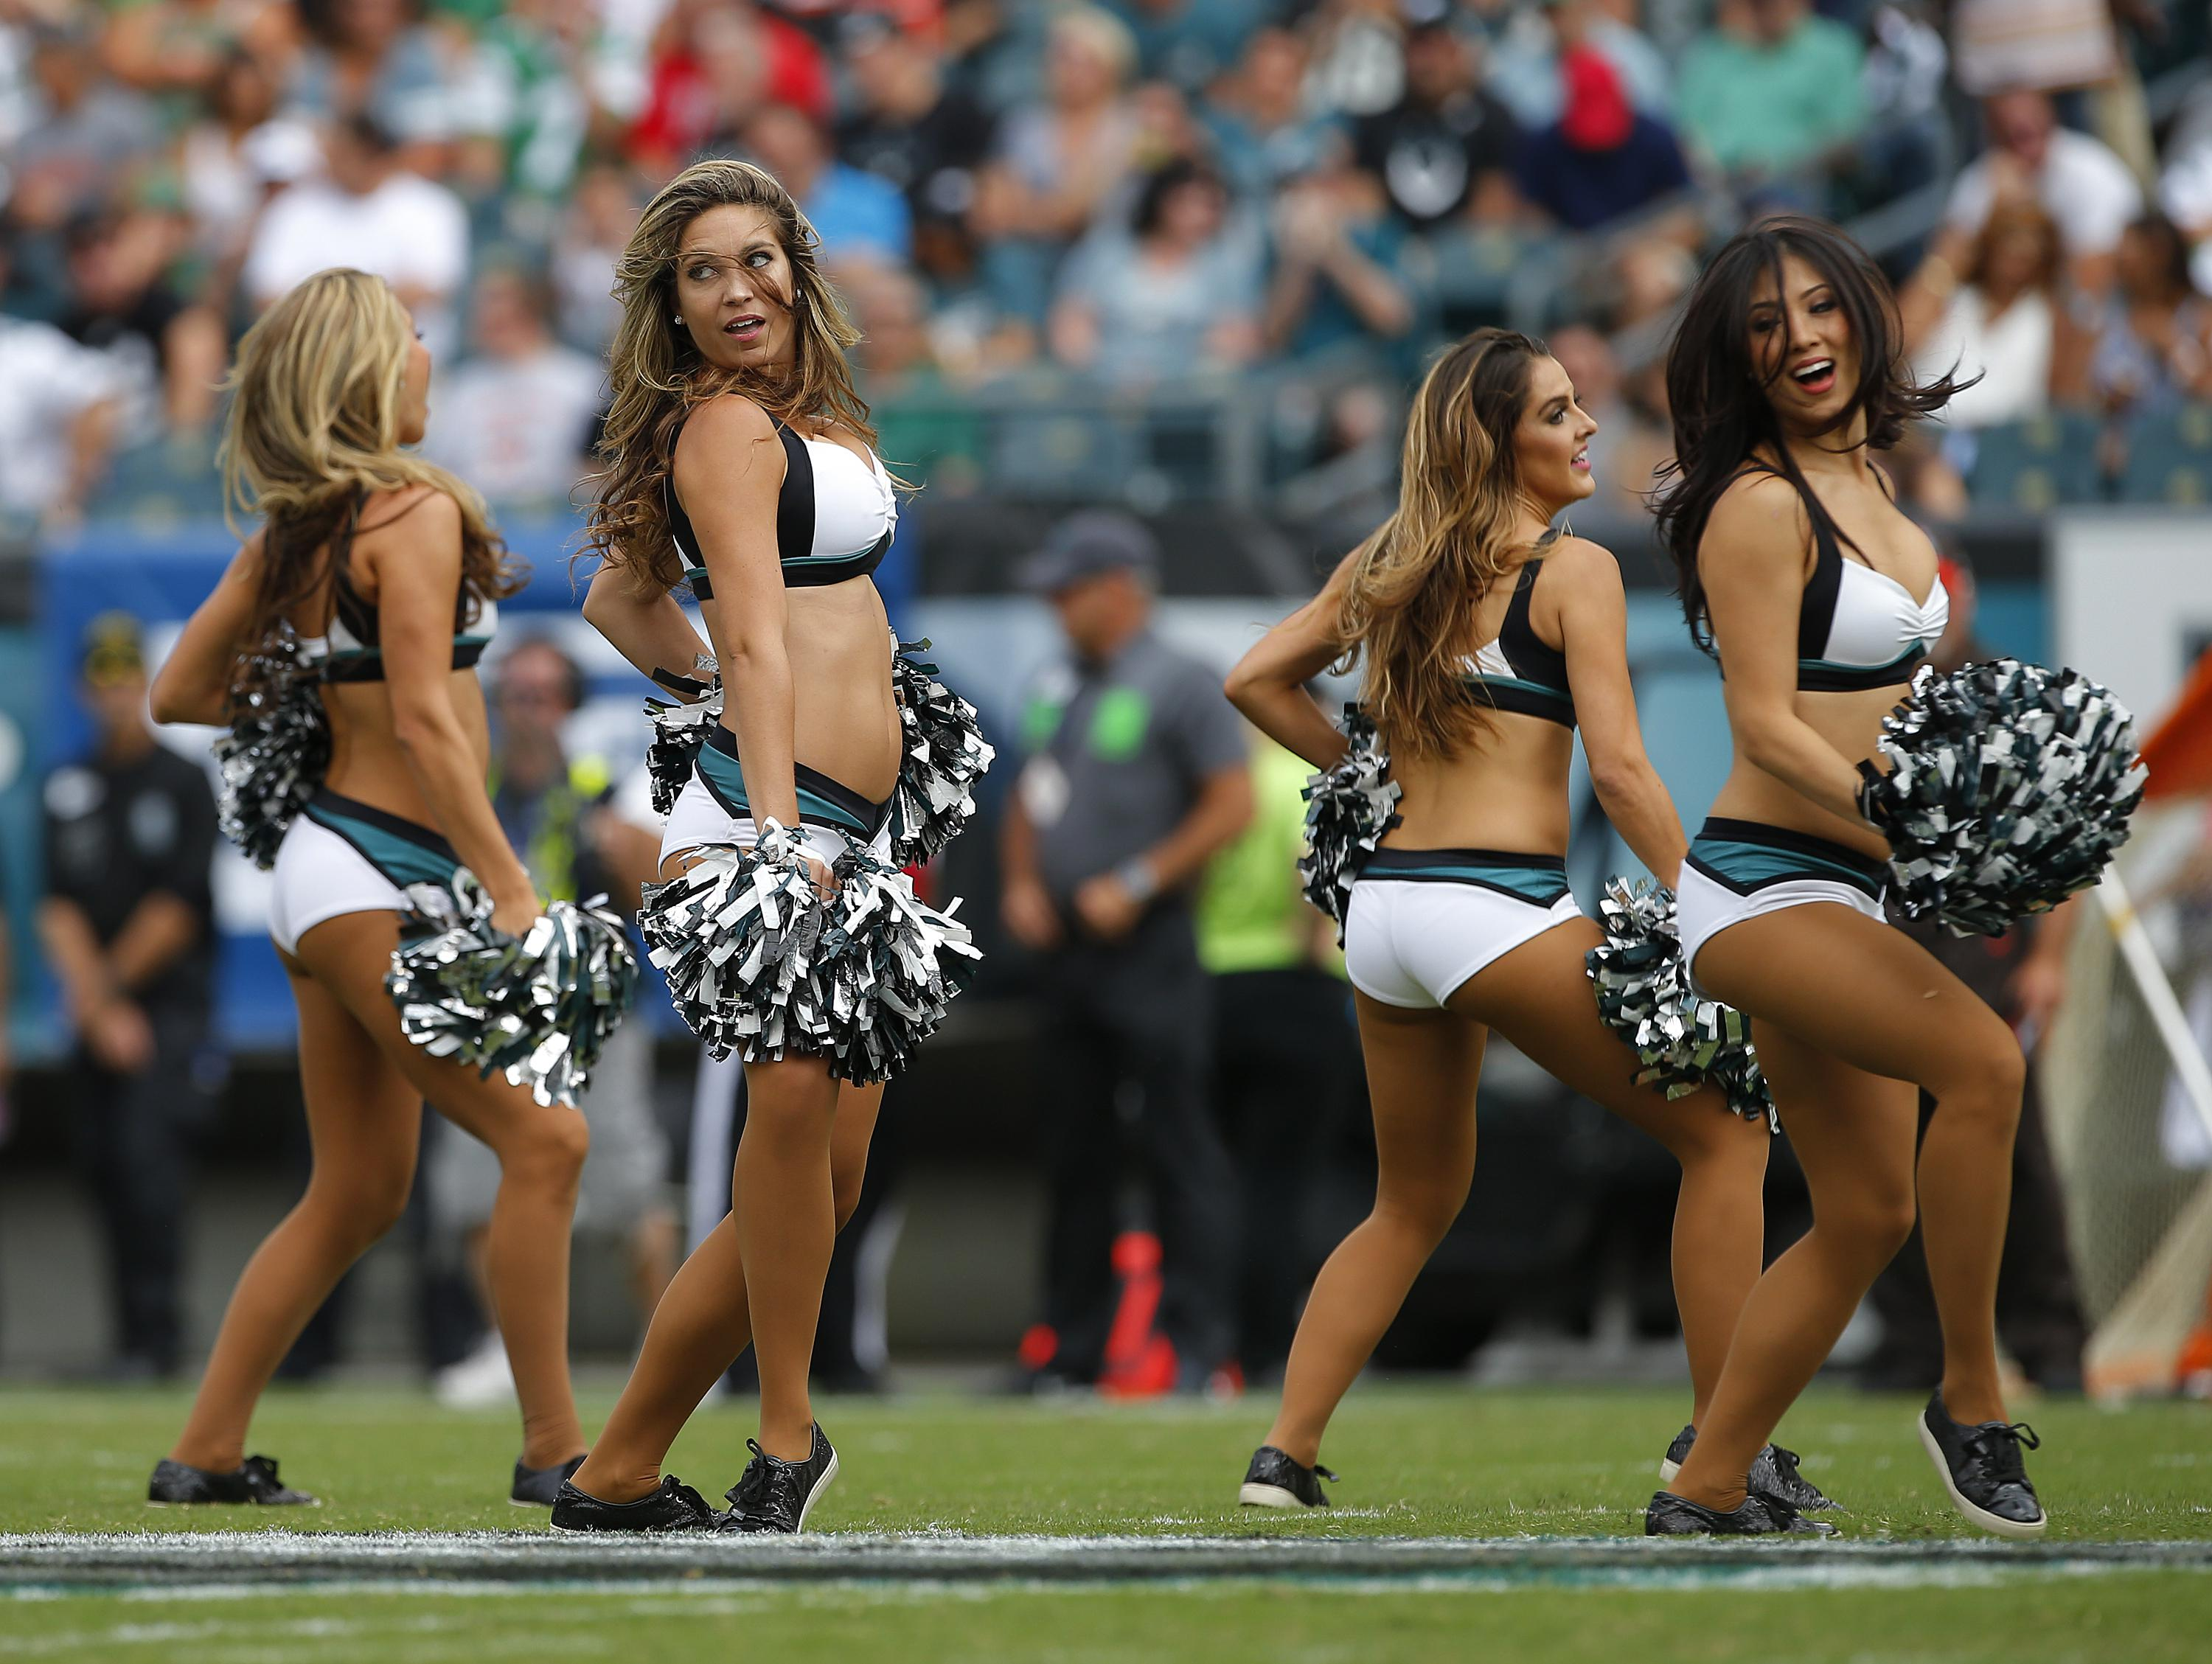 Philadelphia Eagles cheerleaders in action at Lincoln Financial Field